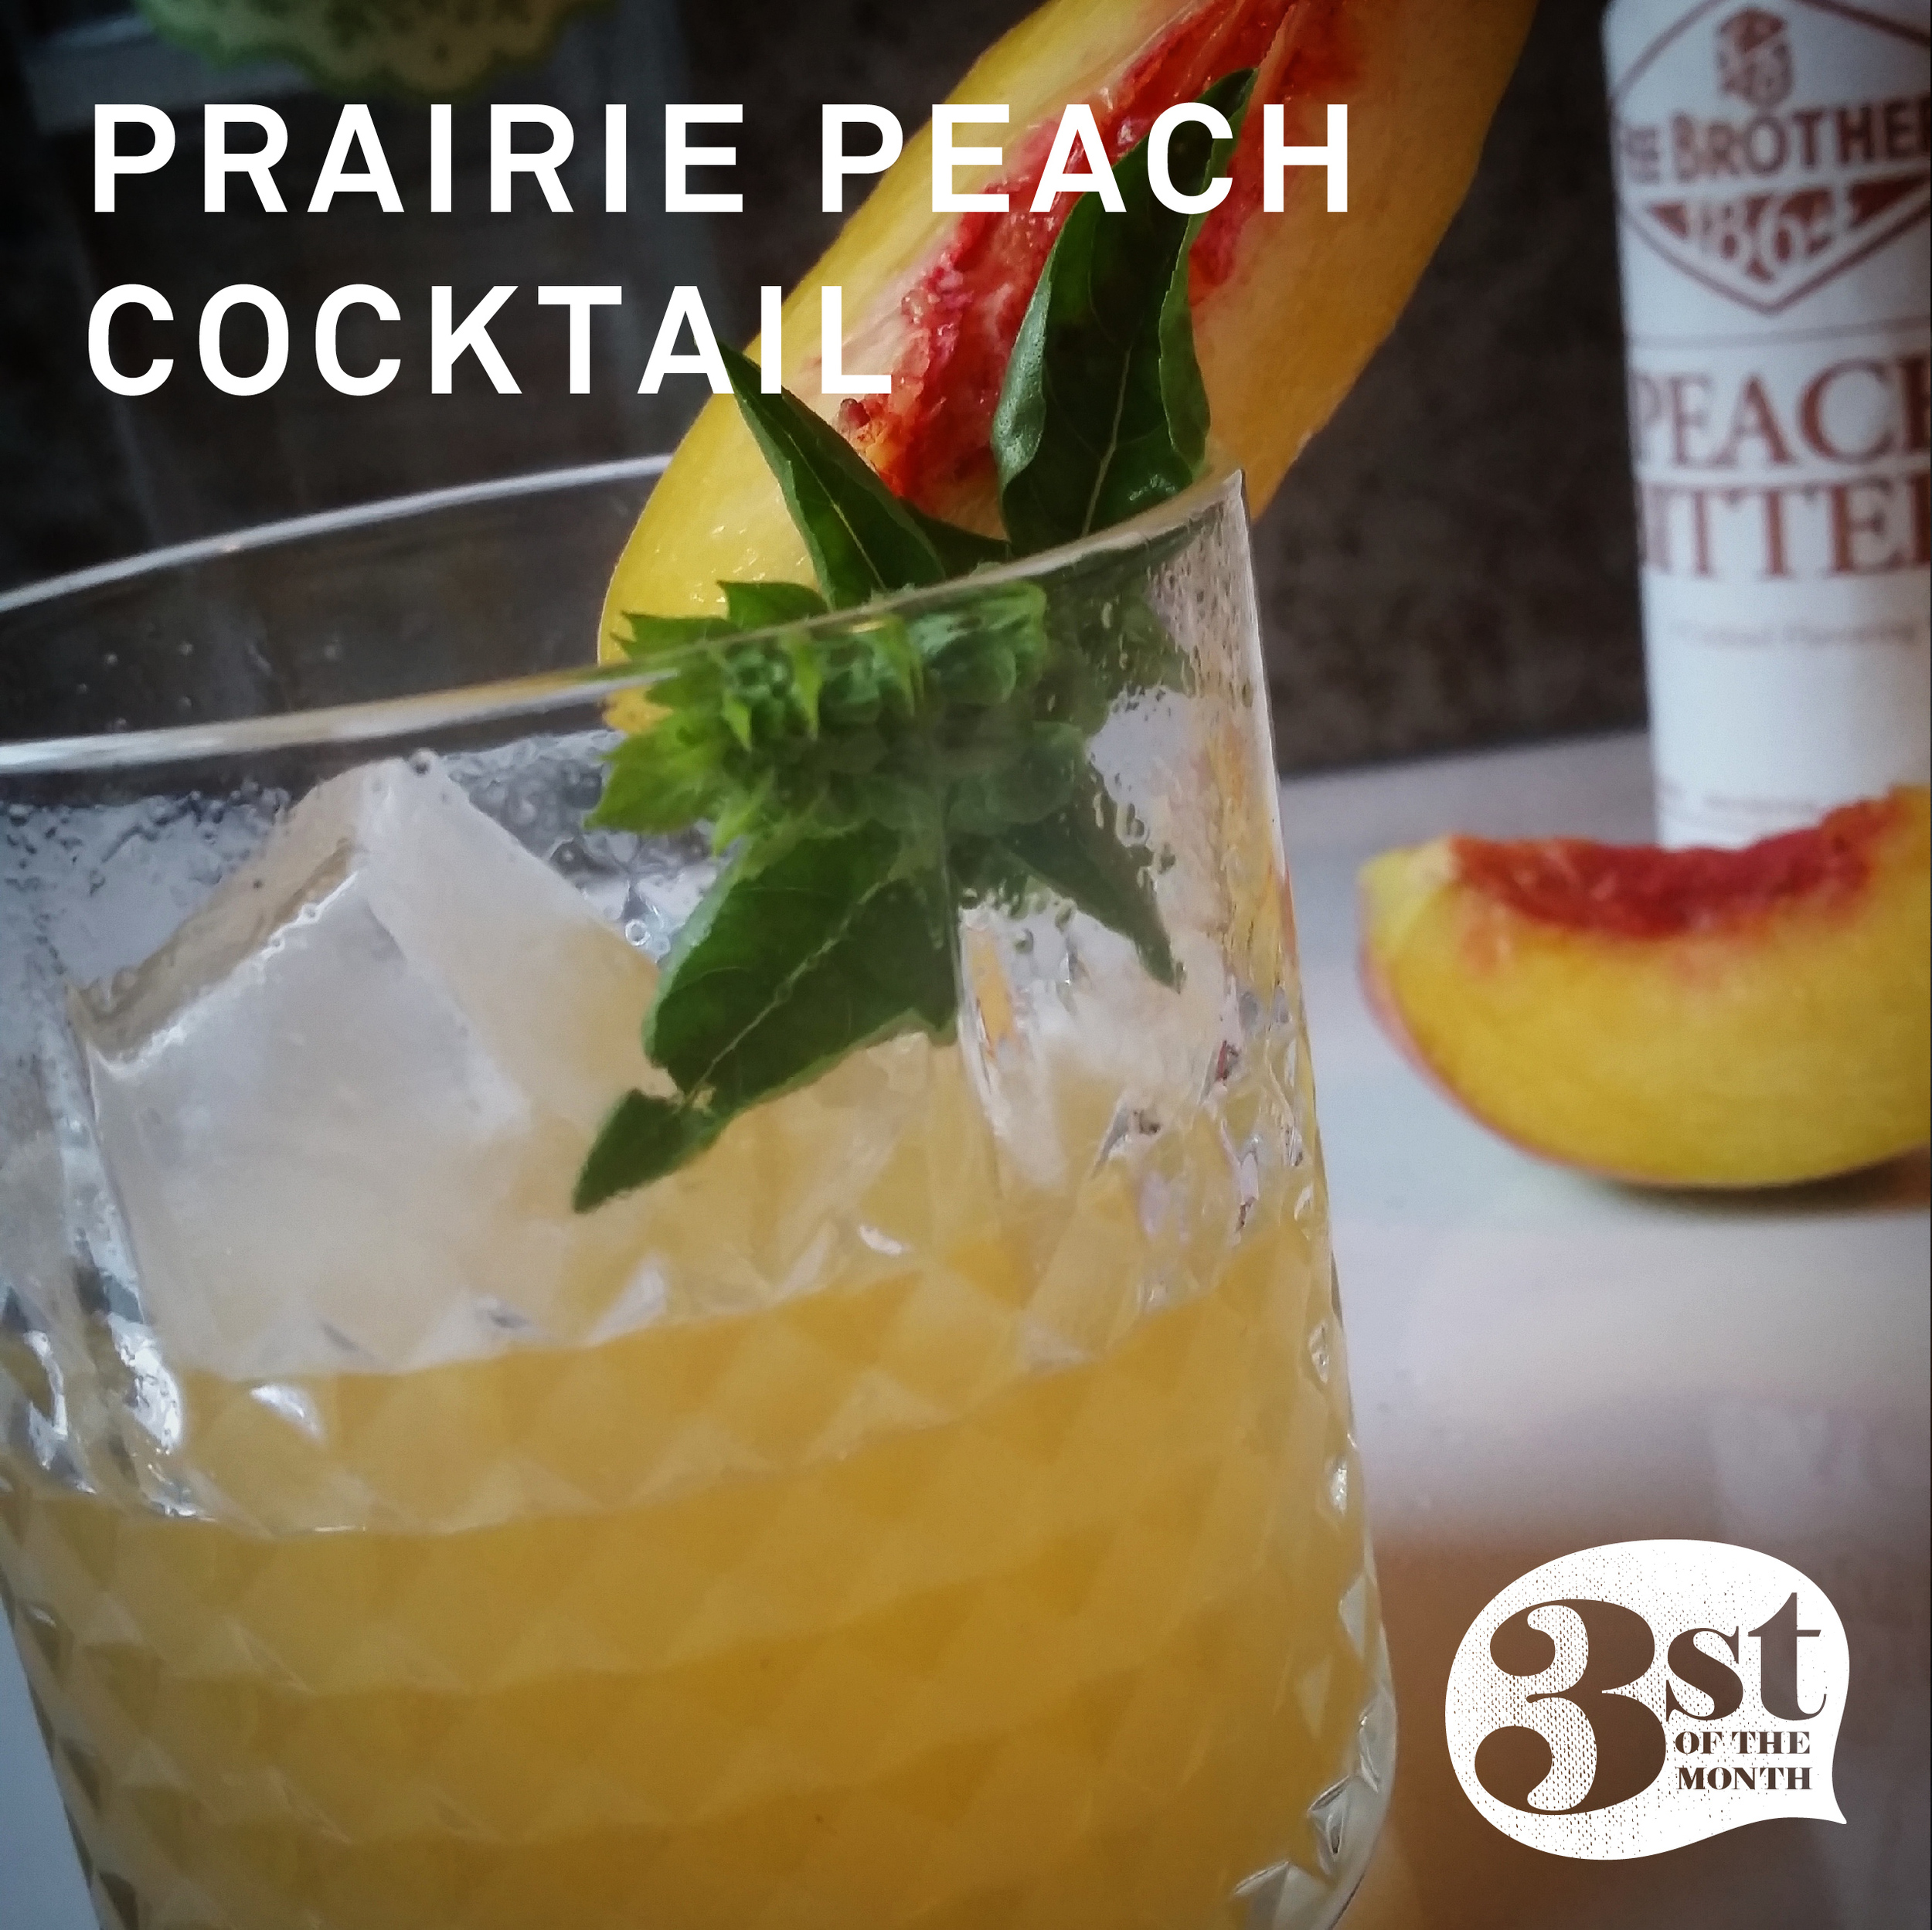 Muddled peaches and basil pair with gin for the Prairie Peach Cocktail from 3st of the Month